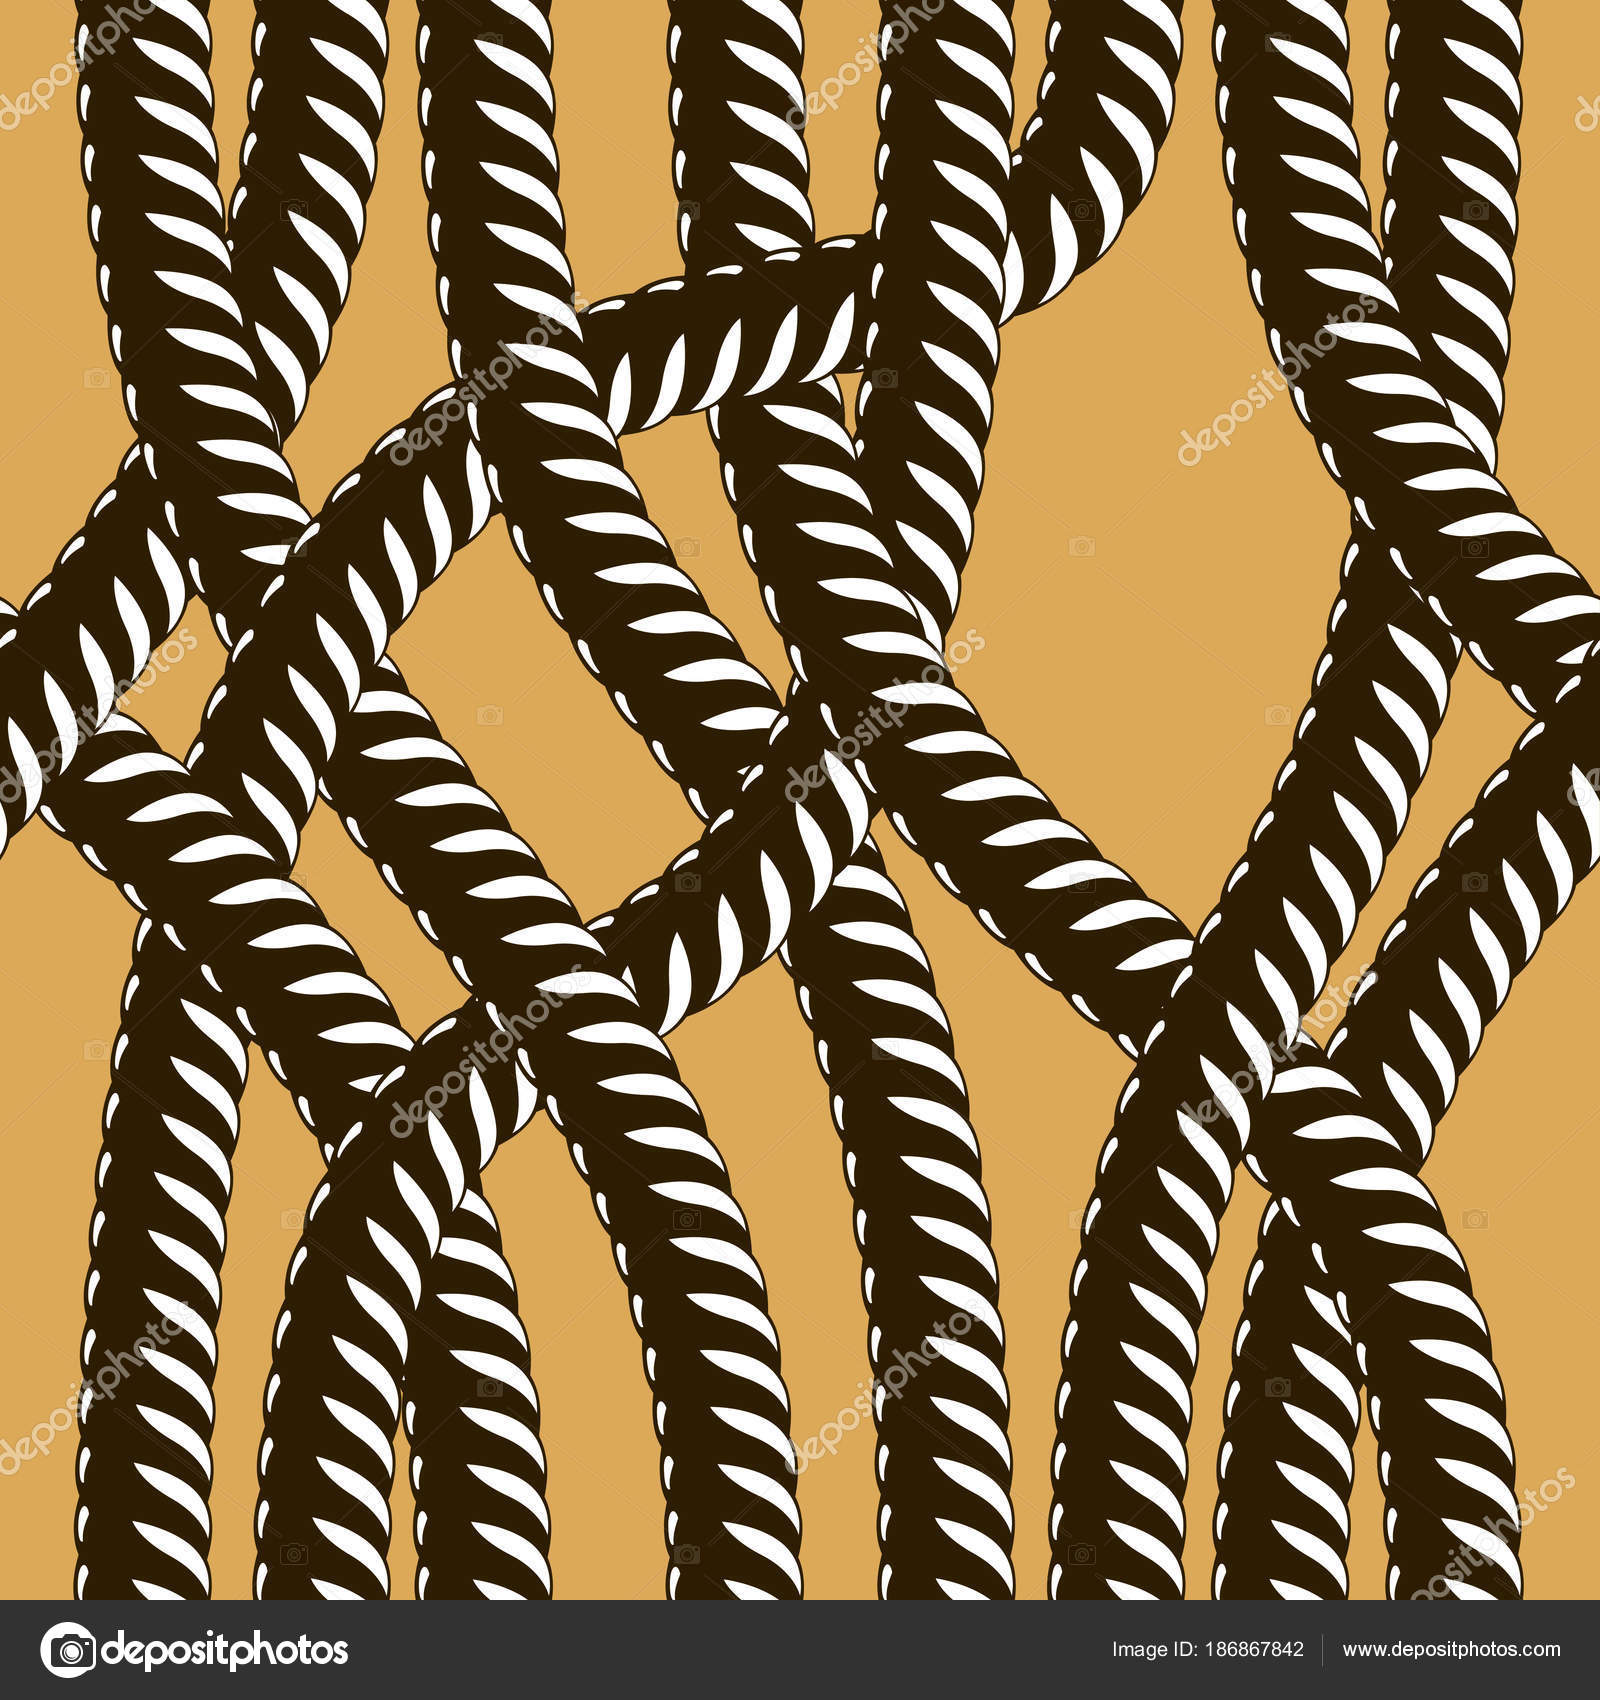 Rope Seamless Pattern Trendy Vector Wallpaper Background Tangled Cord  Stylish U2014 Stock Vector